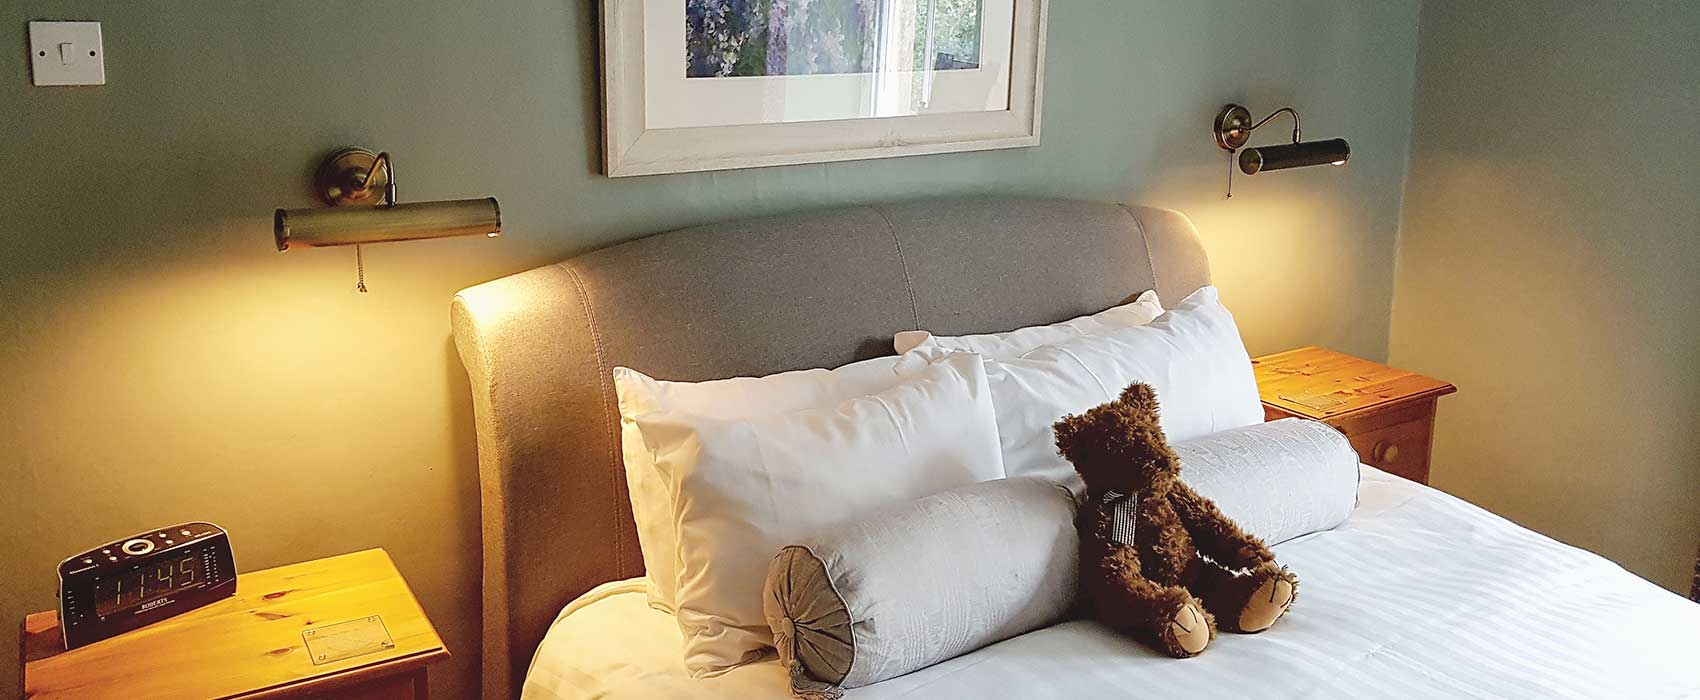 Master bedroom with teddy bear, light with brass lights